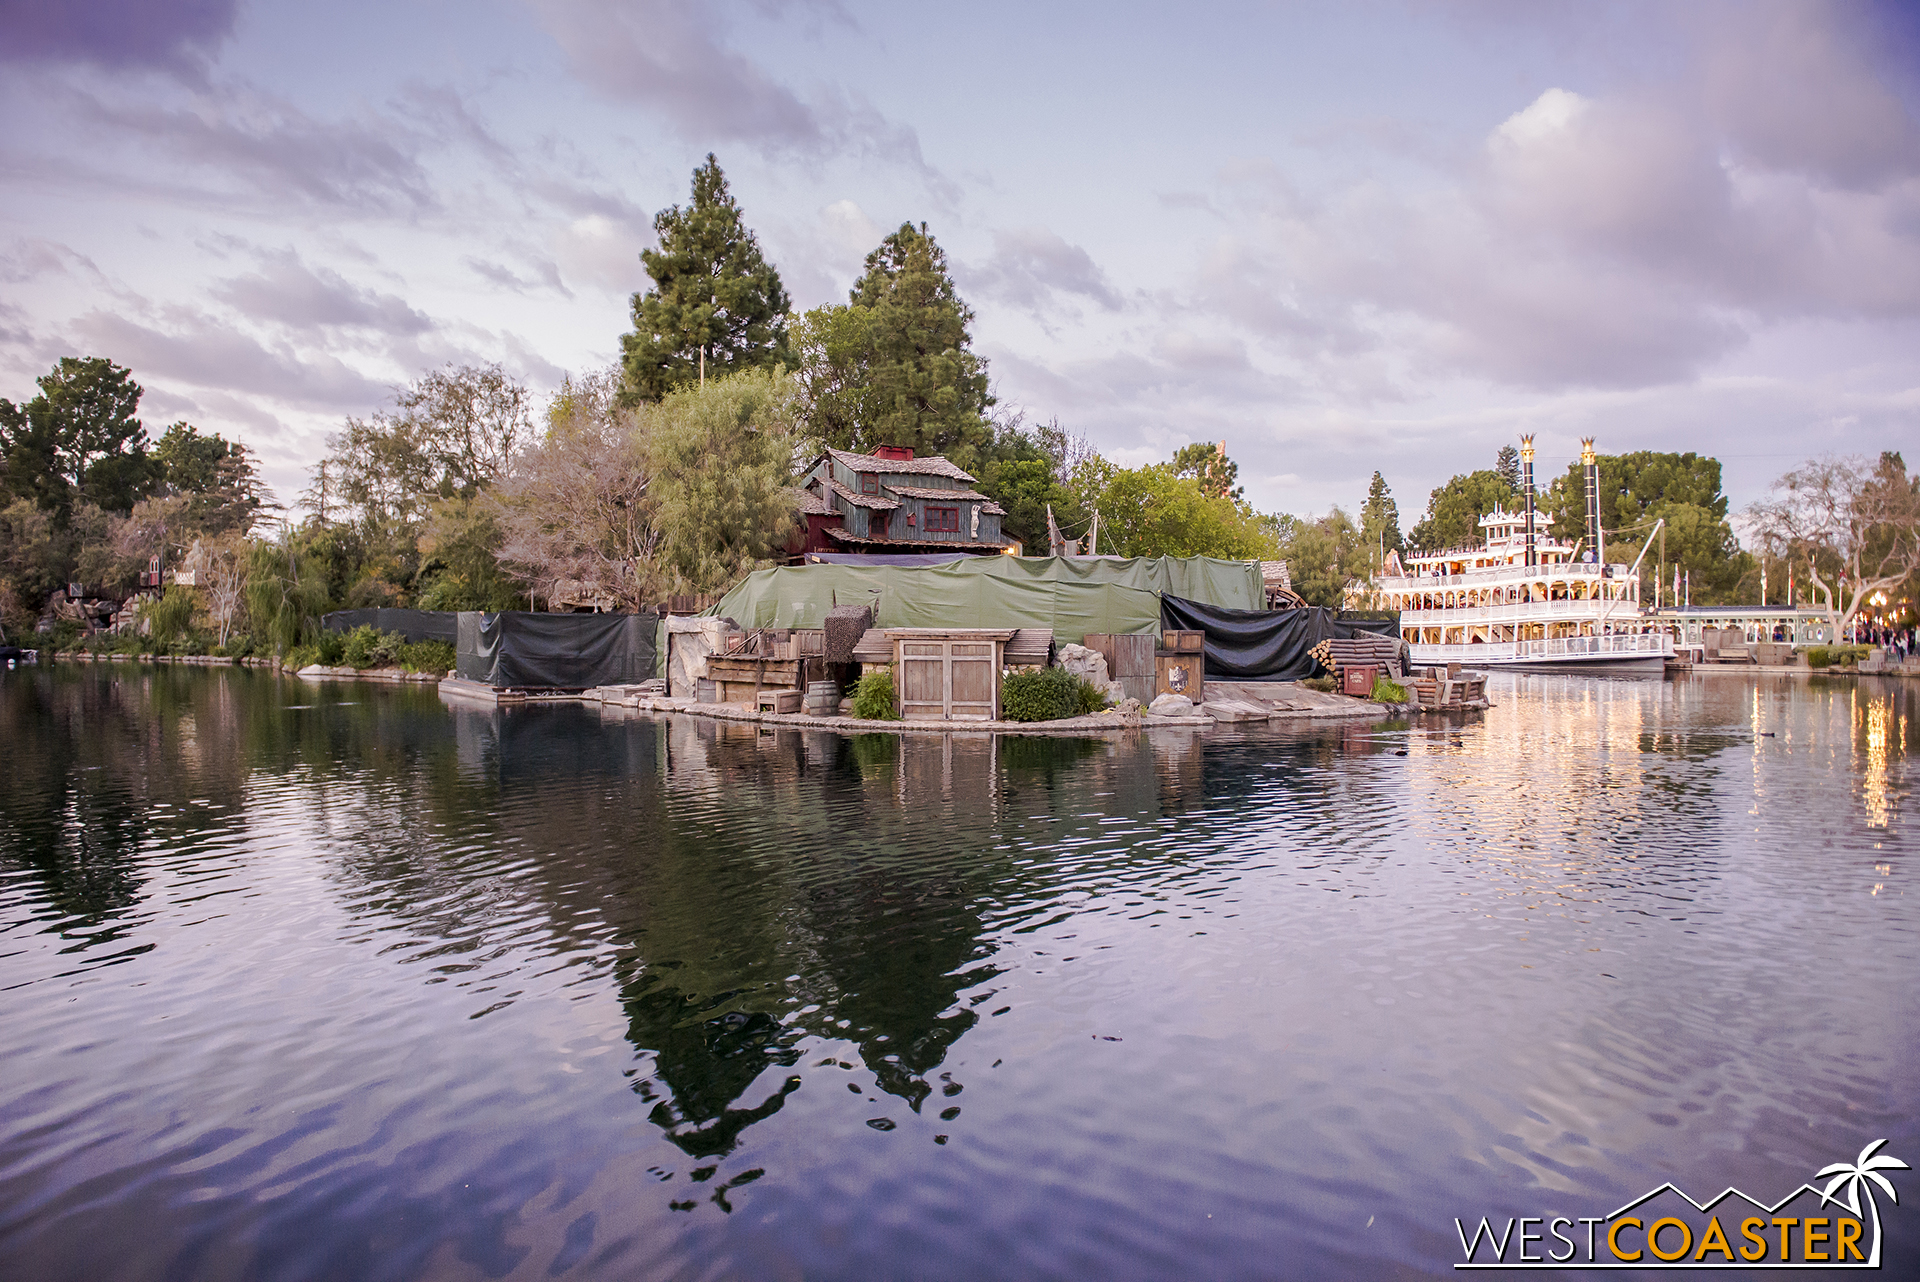 Back to the Island, I have it on very reliable but uncorroborated source that it will feature a reconfigured Maleficent pedestal that will now be Elsa casting incredible snow effects and whirling ice creations in the new FANTASMIC!